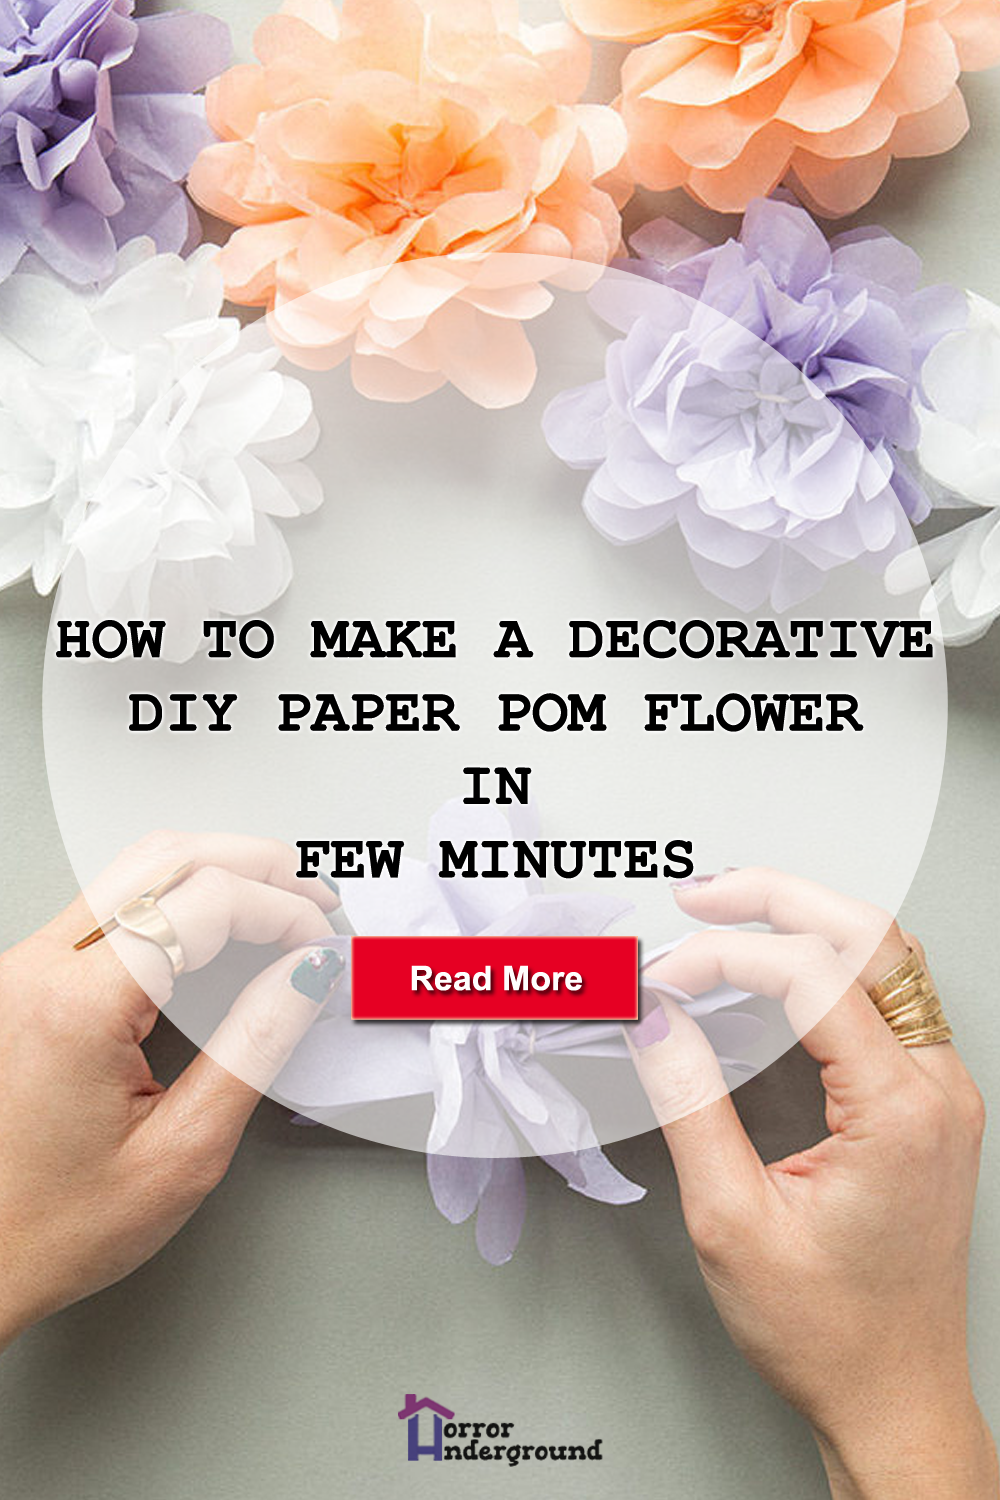 How To Make a Decorative DIY Paper Pom Flower In Few Minutes images